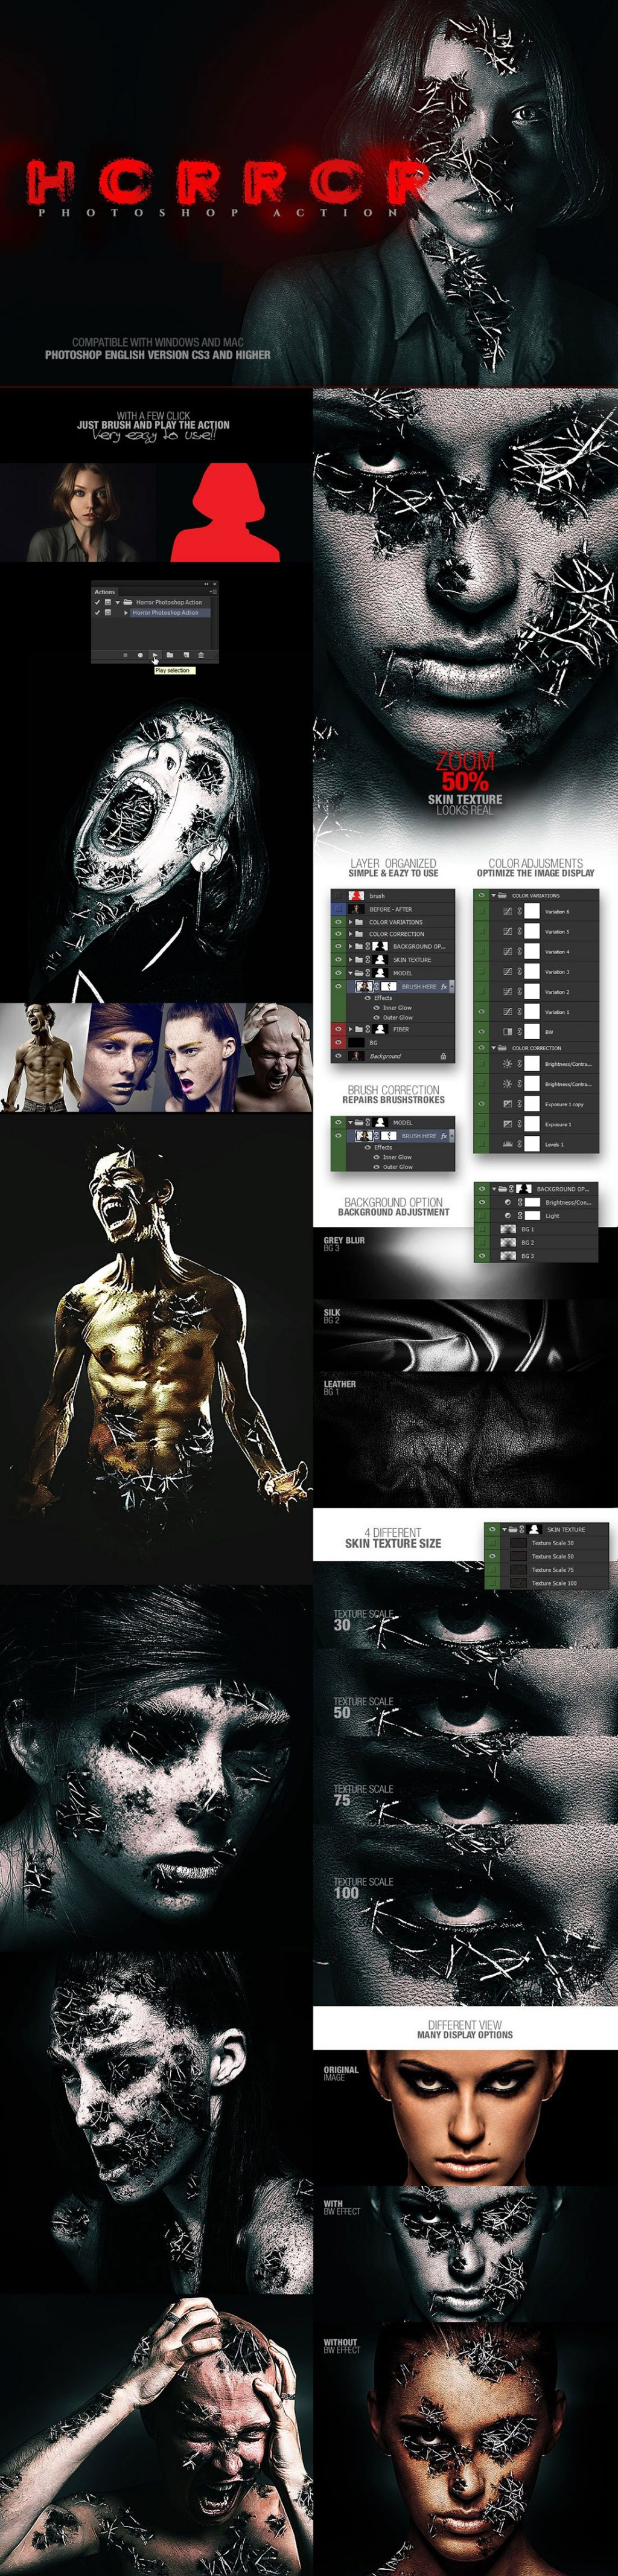 Photoshop Actions & Templates: Artistic Photo FX Bundle - horror photoshop action design by amorjesu